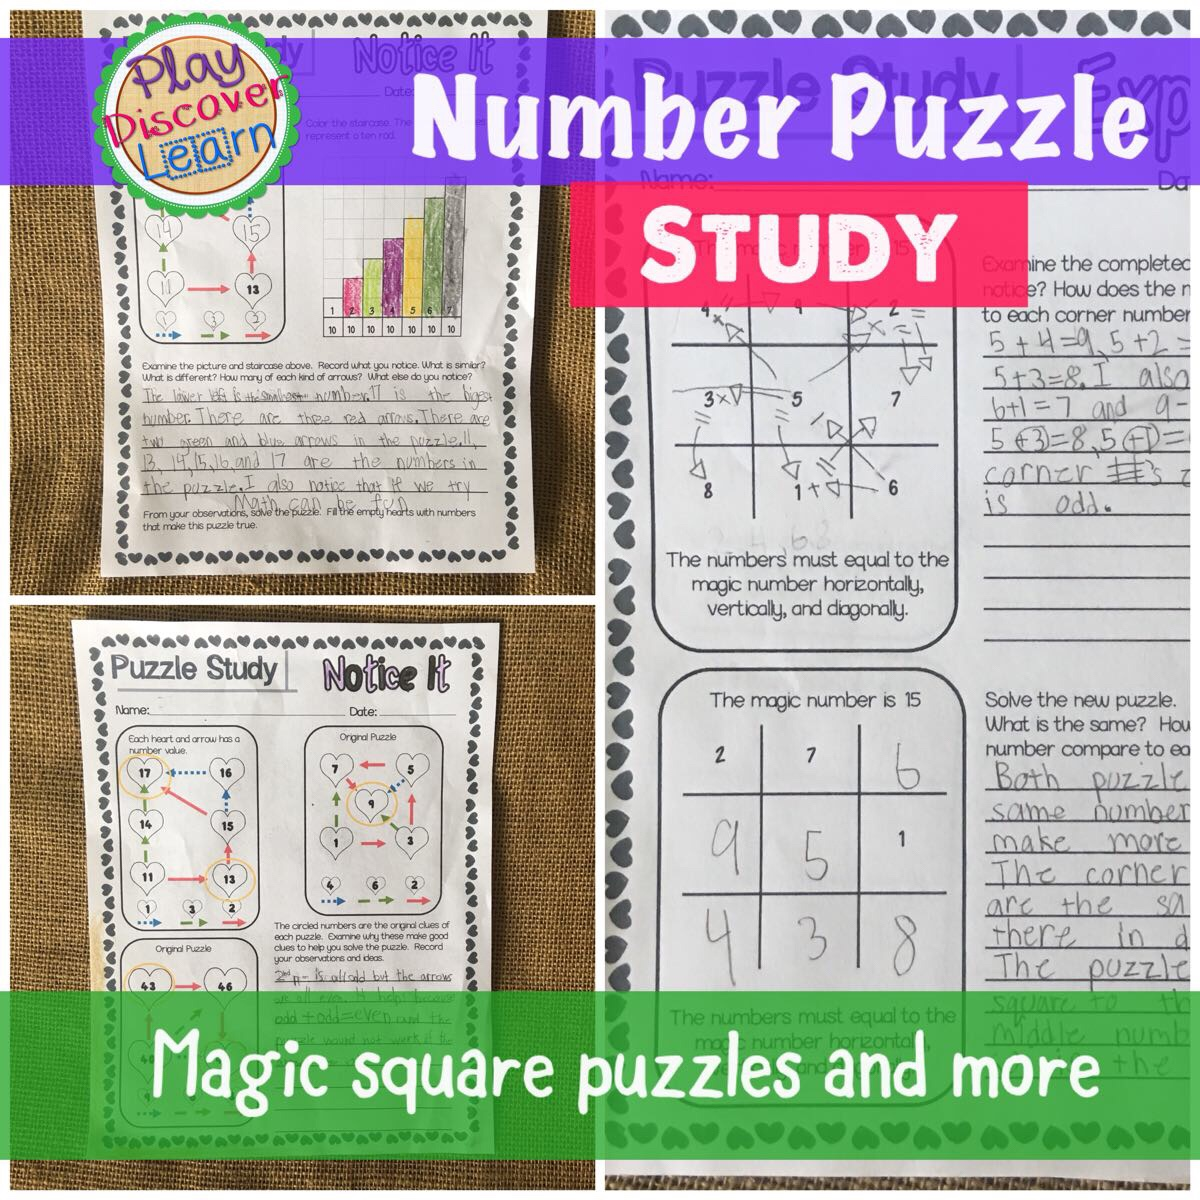 how to create your own magic square puzzles